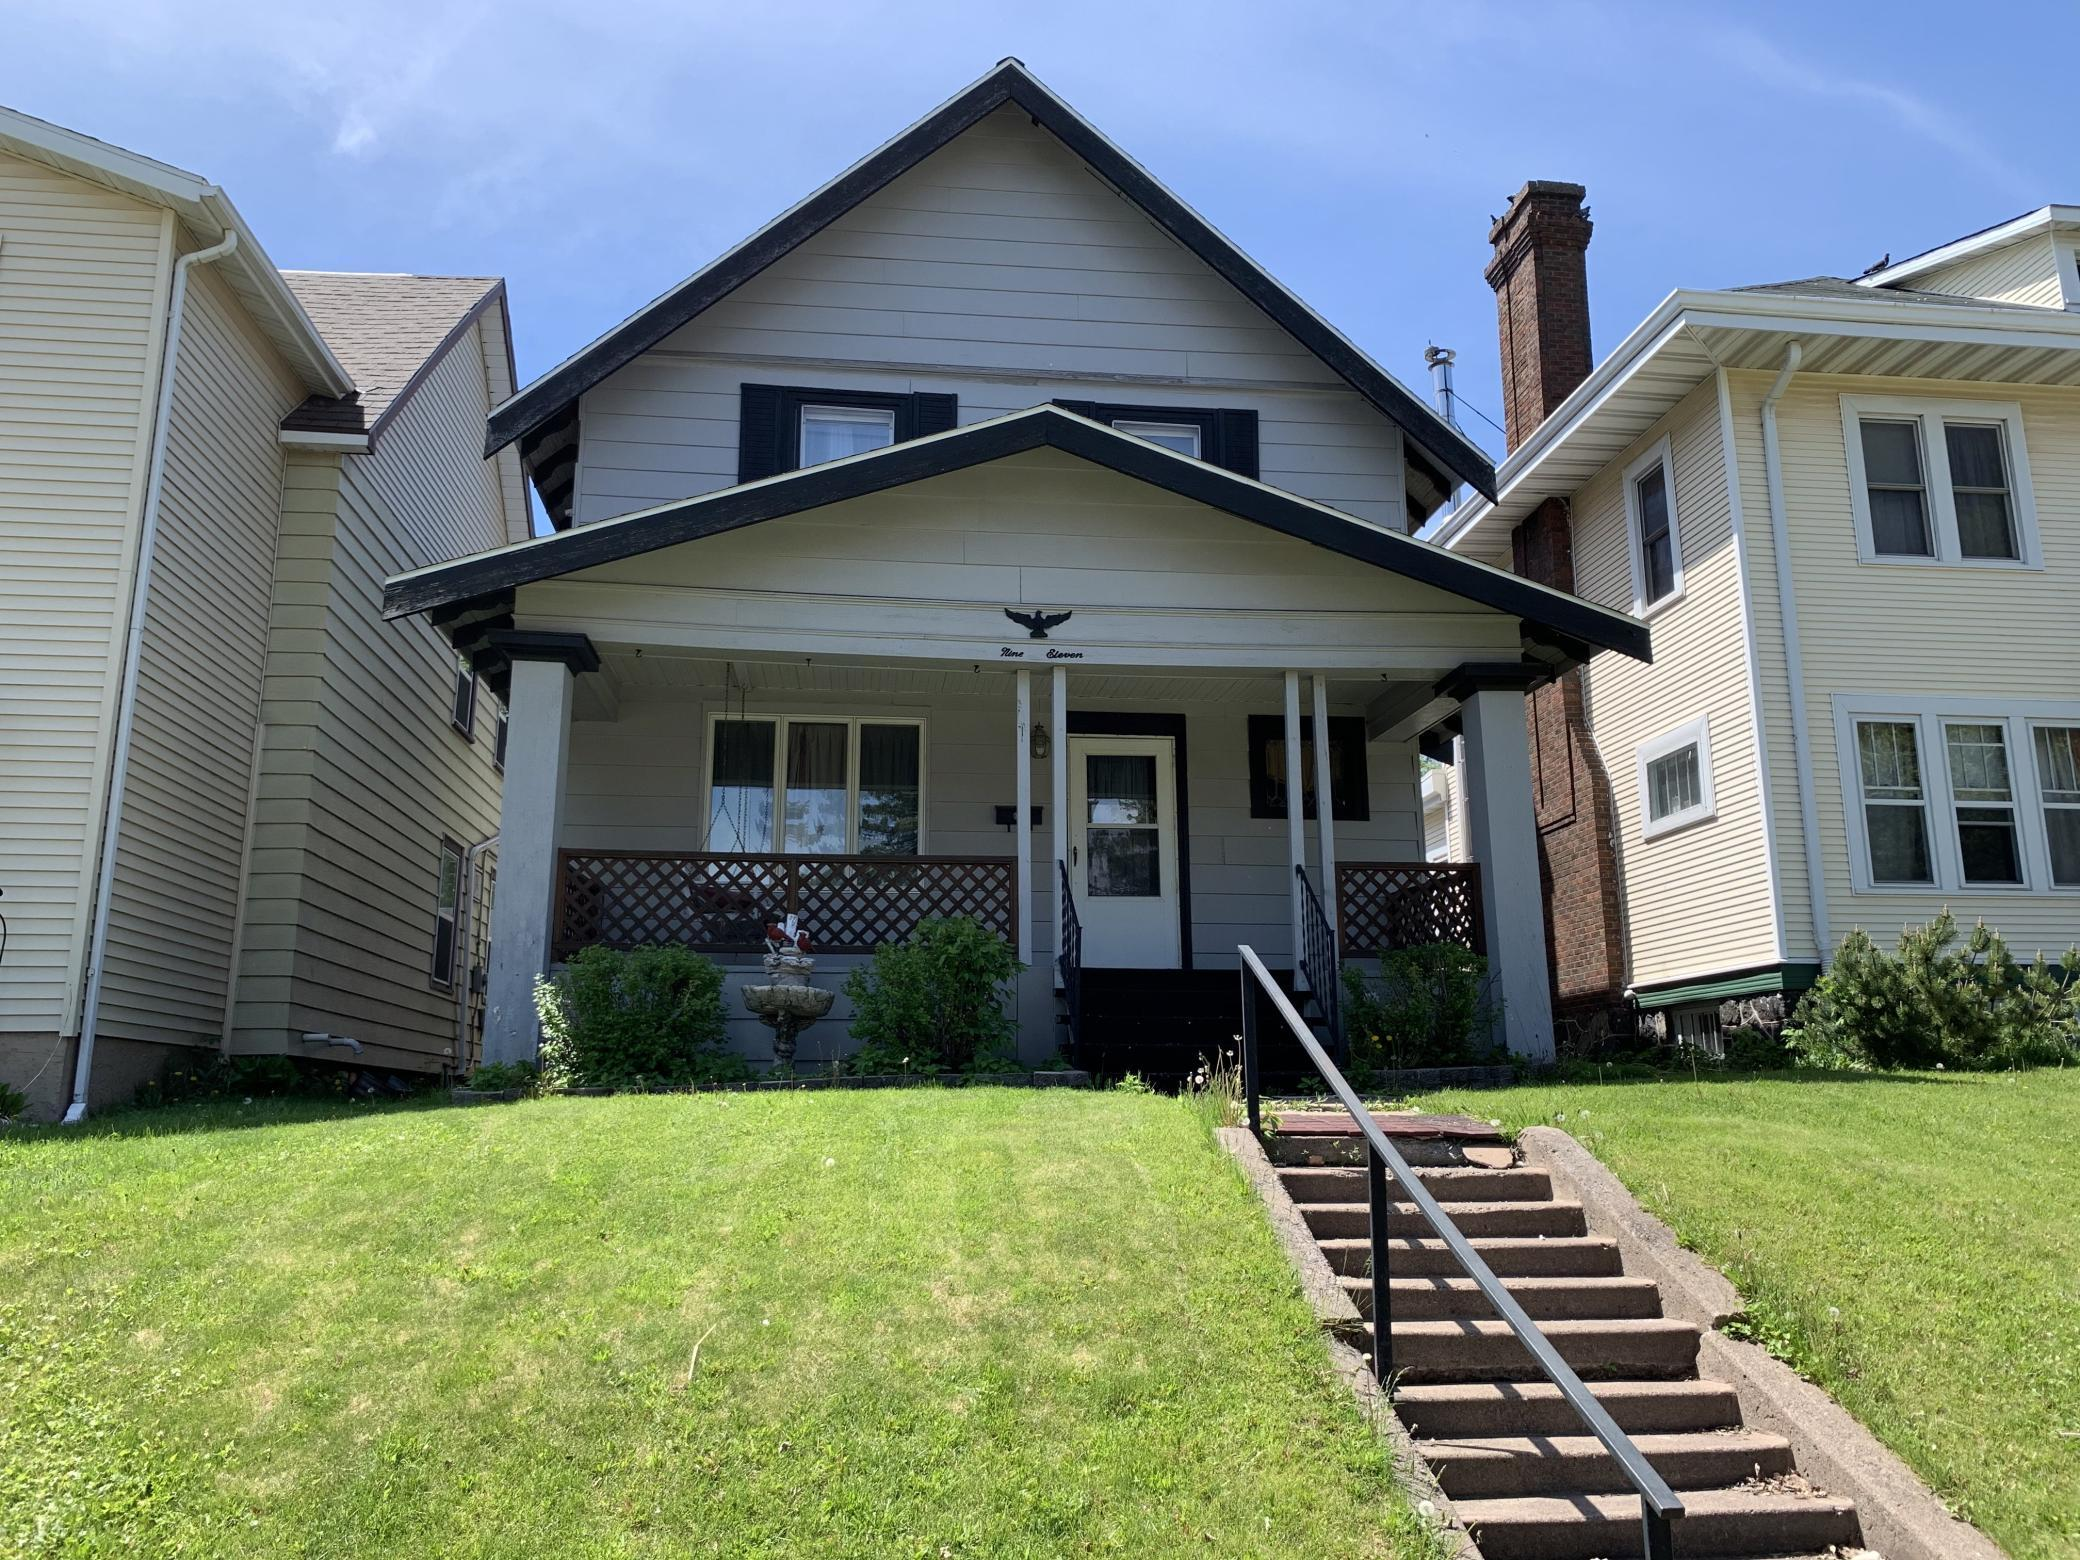 911 N Central Avenue Property Photo - Duluth, MN real estate listing